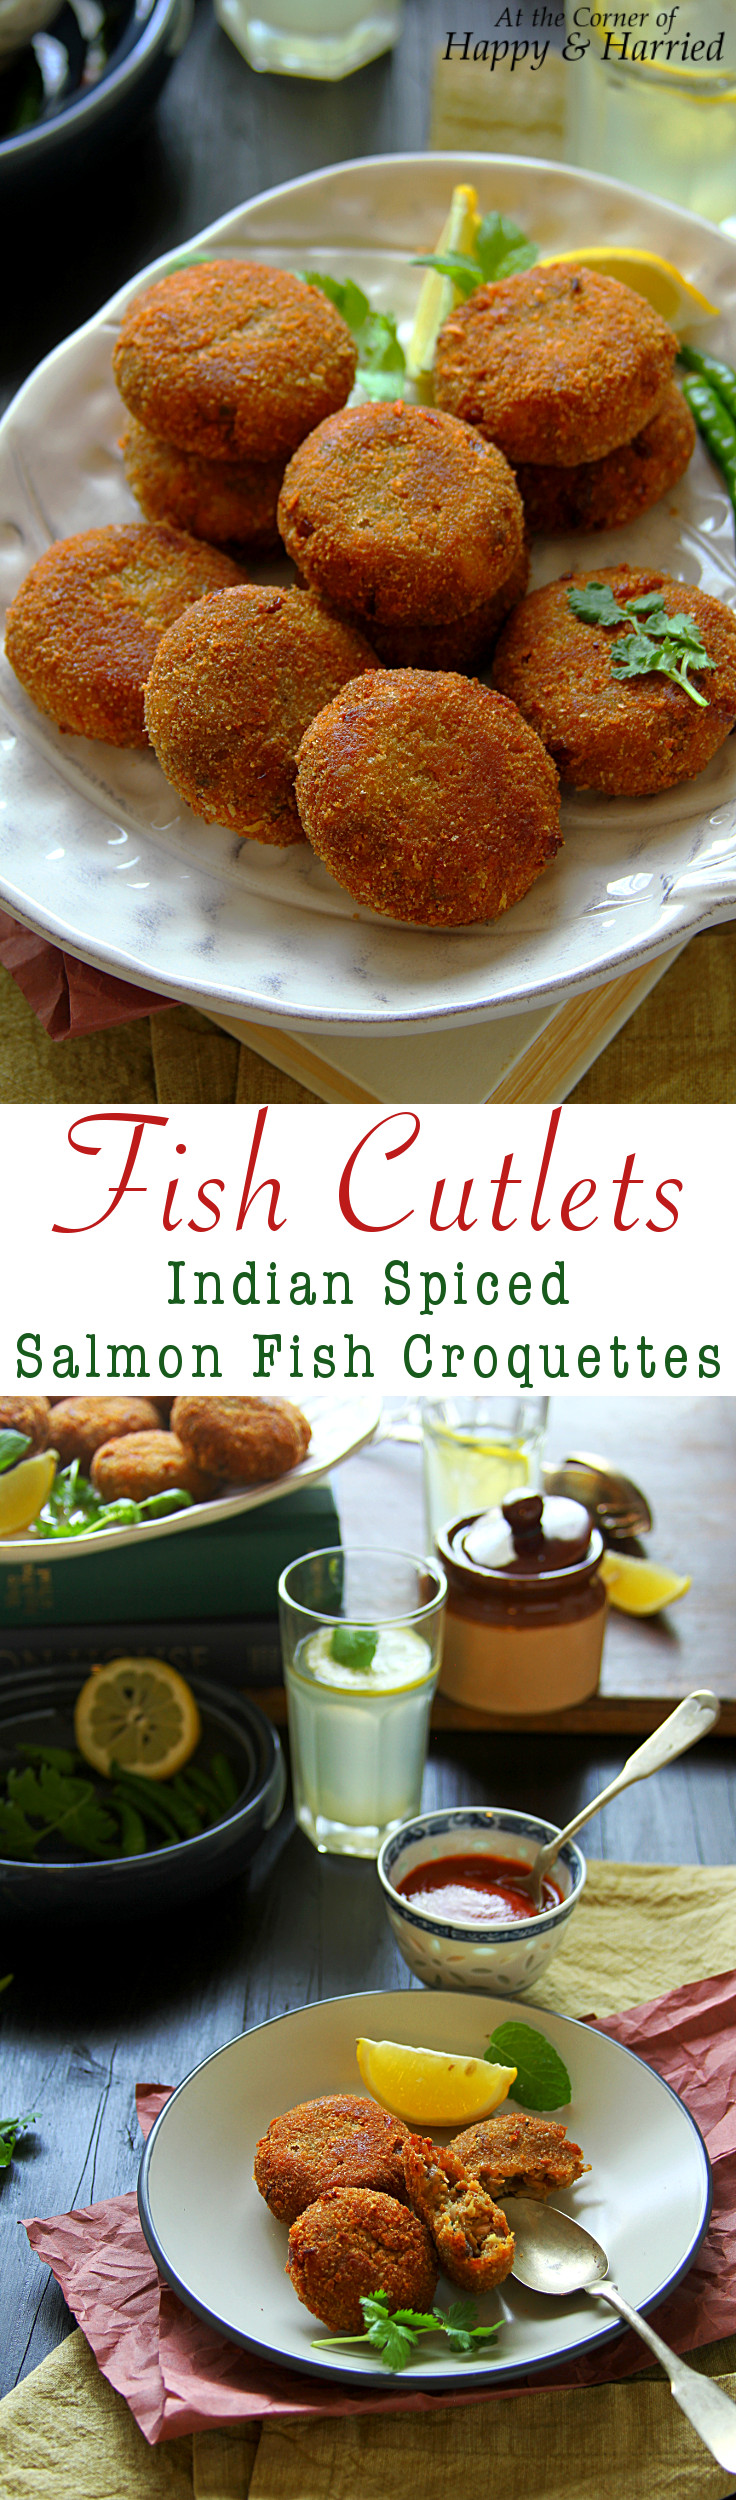 FISH CUTLETS {INDIAN SPICED SALMON FISH CROQUETTES} - HAPPY&HARRIED